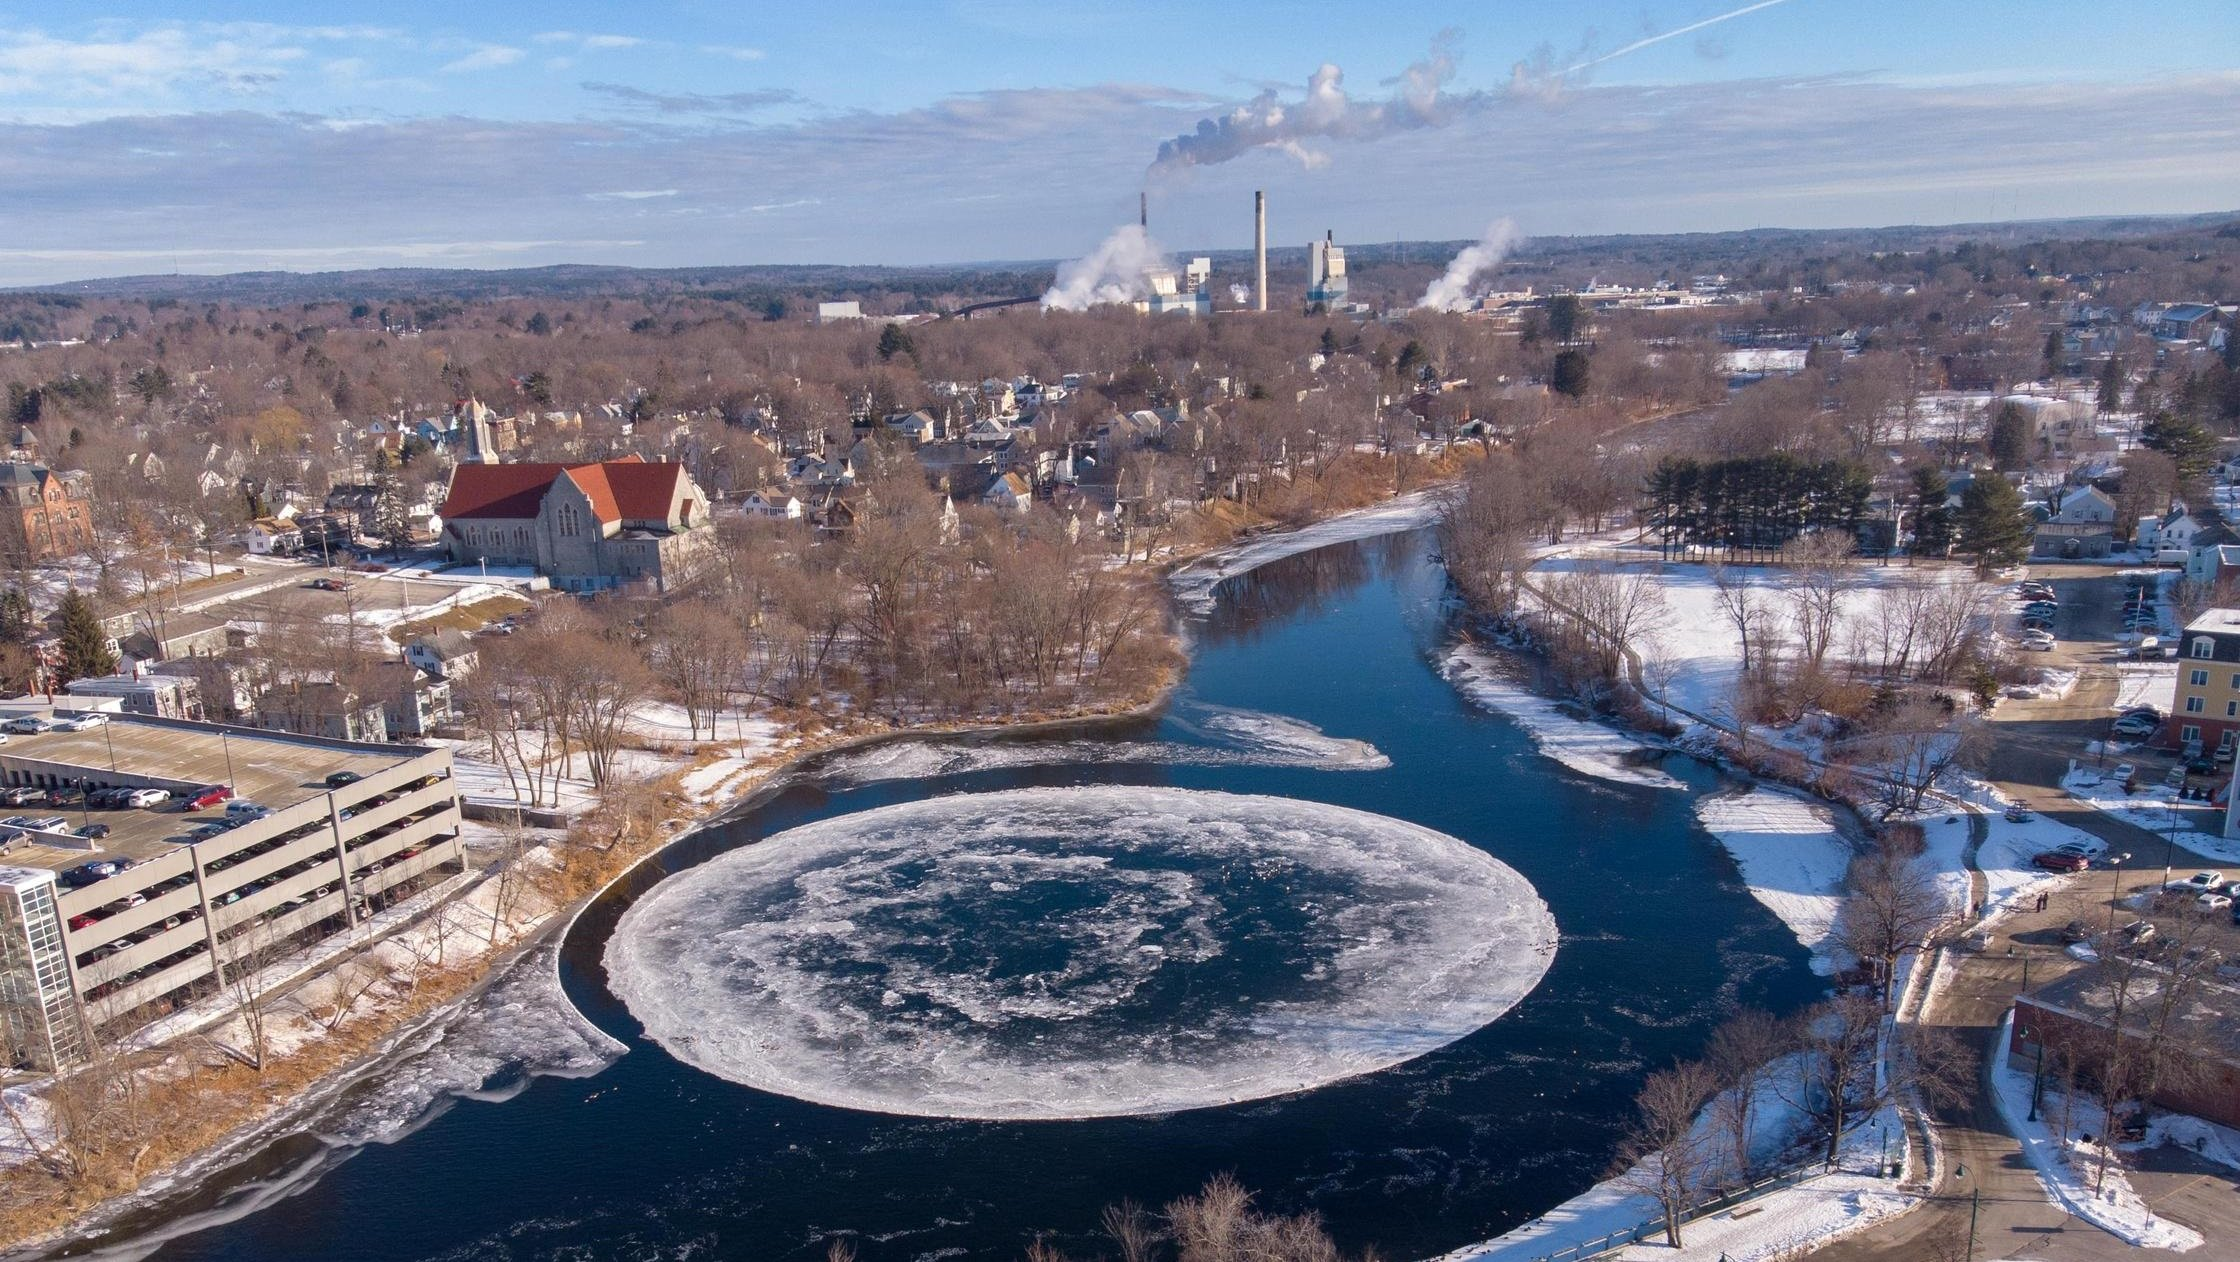 An ice disk has appeared in Westbrook, Maine that's reminiscent of the ice ball over Polar Peak in Fortnite.